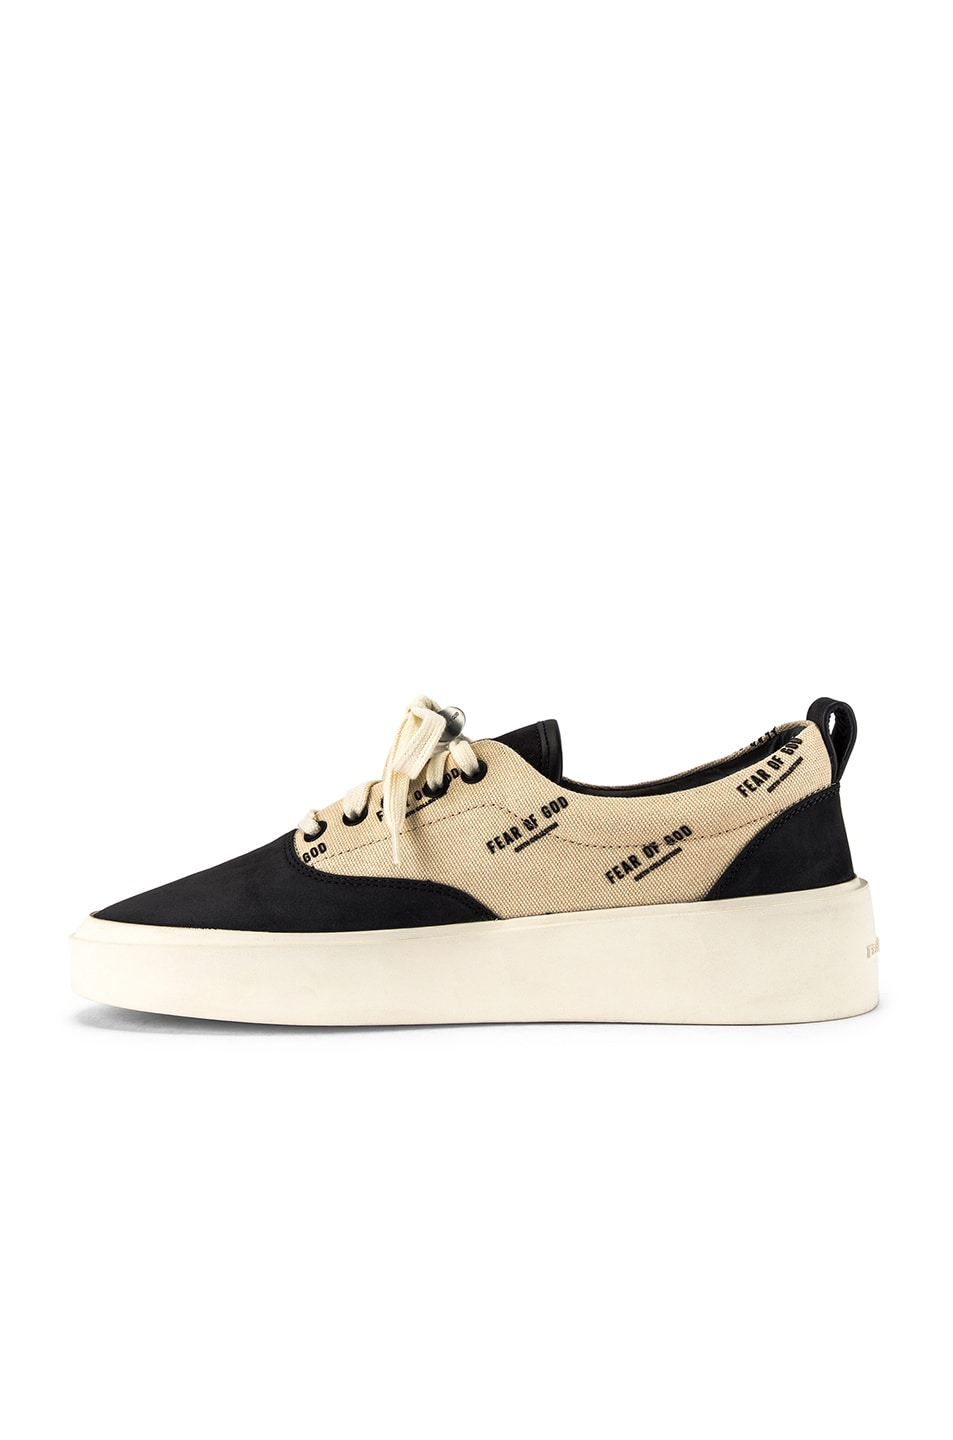 Image 5 of Fear of God 101 Lace Up Sneaker in Black & Creme Logo Print